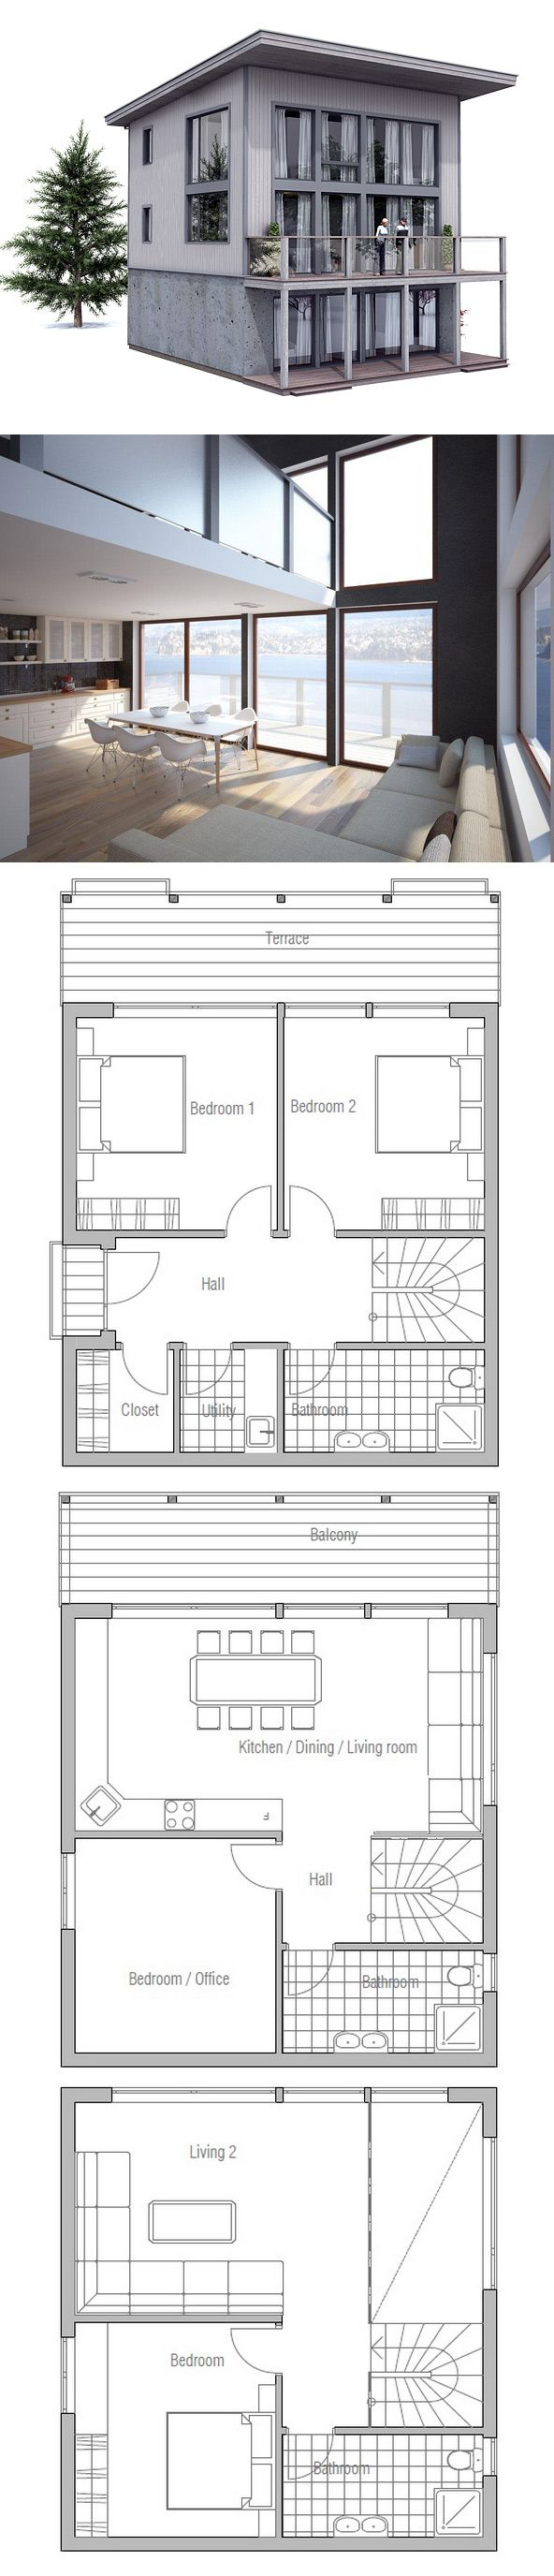 Small House Plan only 2 floors